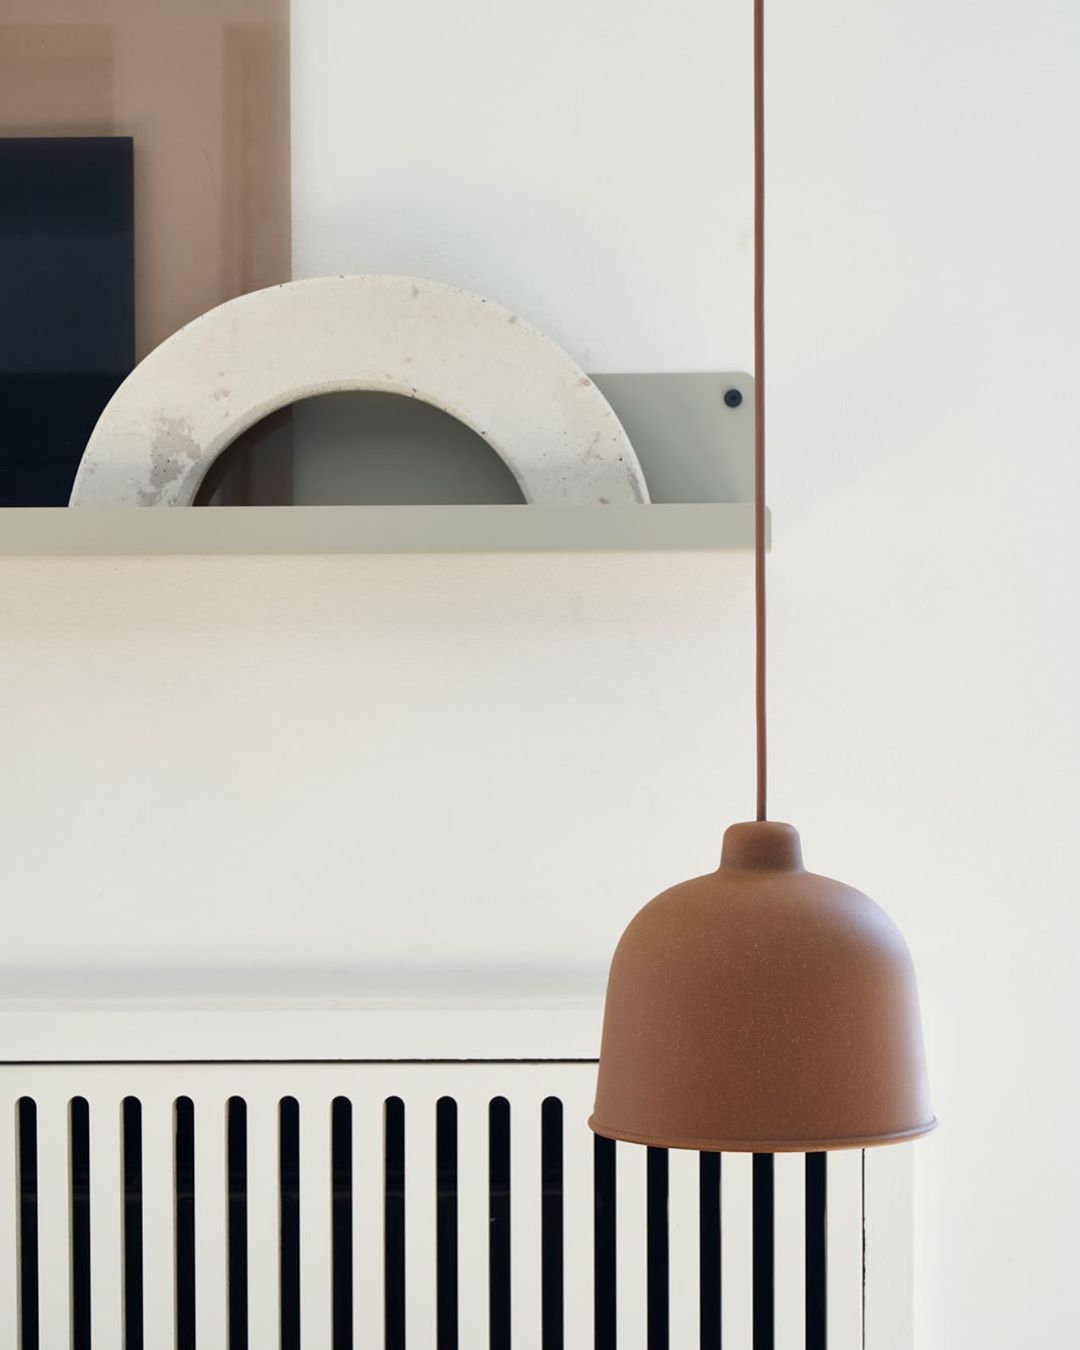 Muuto On Instagram A Simple Lamp For Any Space The Grain Pendant Lamp Is Made In A Bamboo Fiber For A Tactile Touch And Textured Simple Lamp Home Decor Lamp